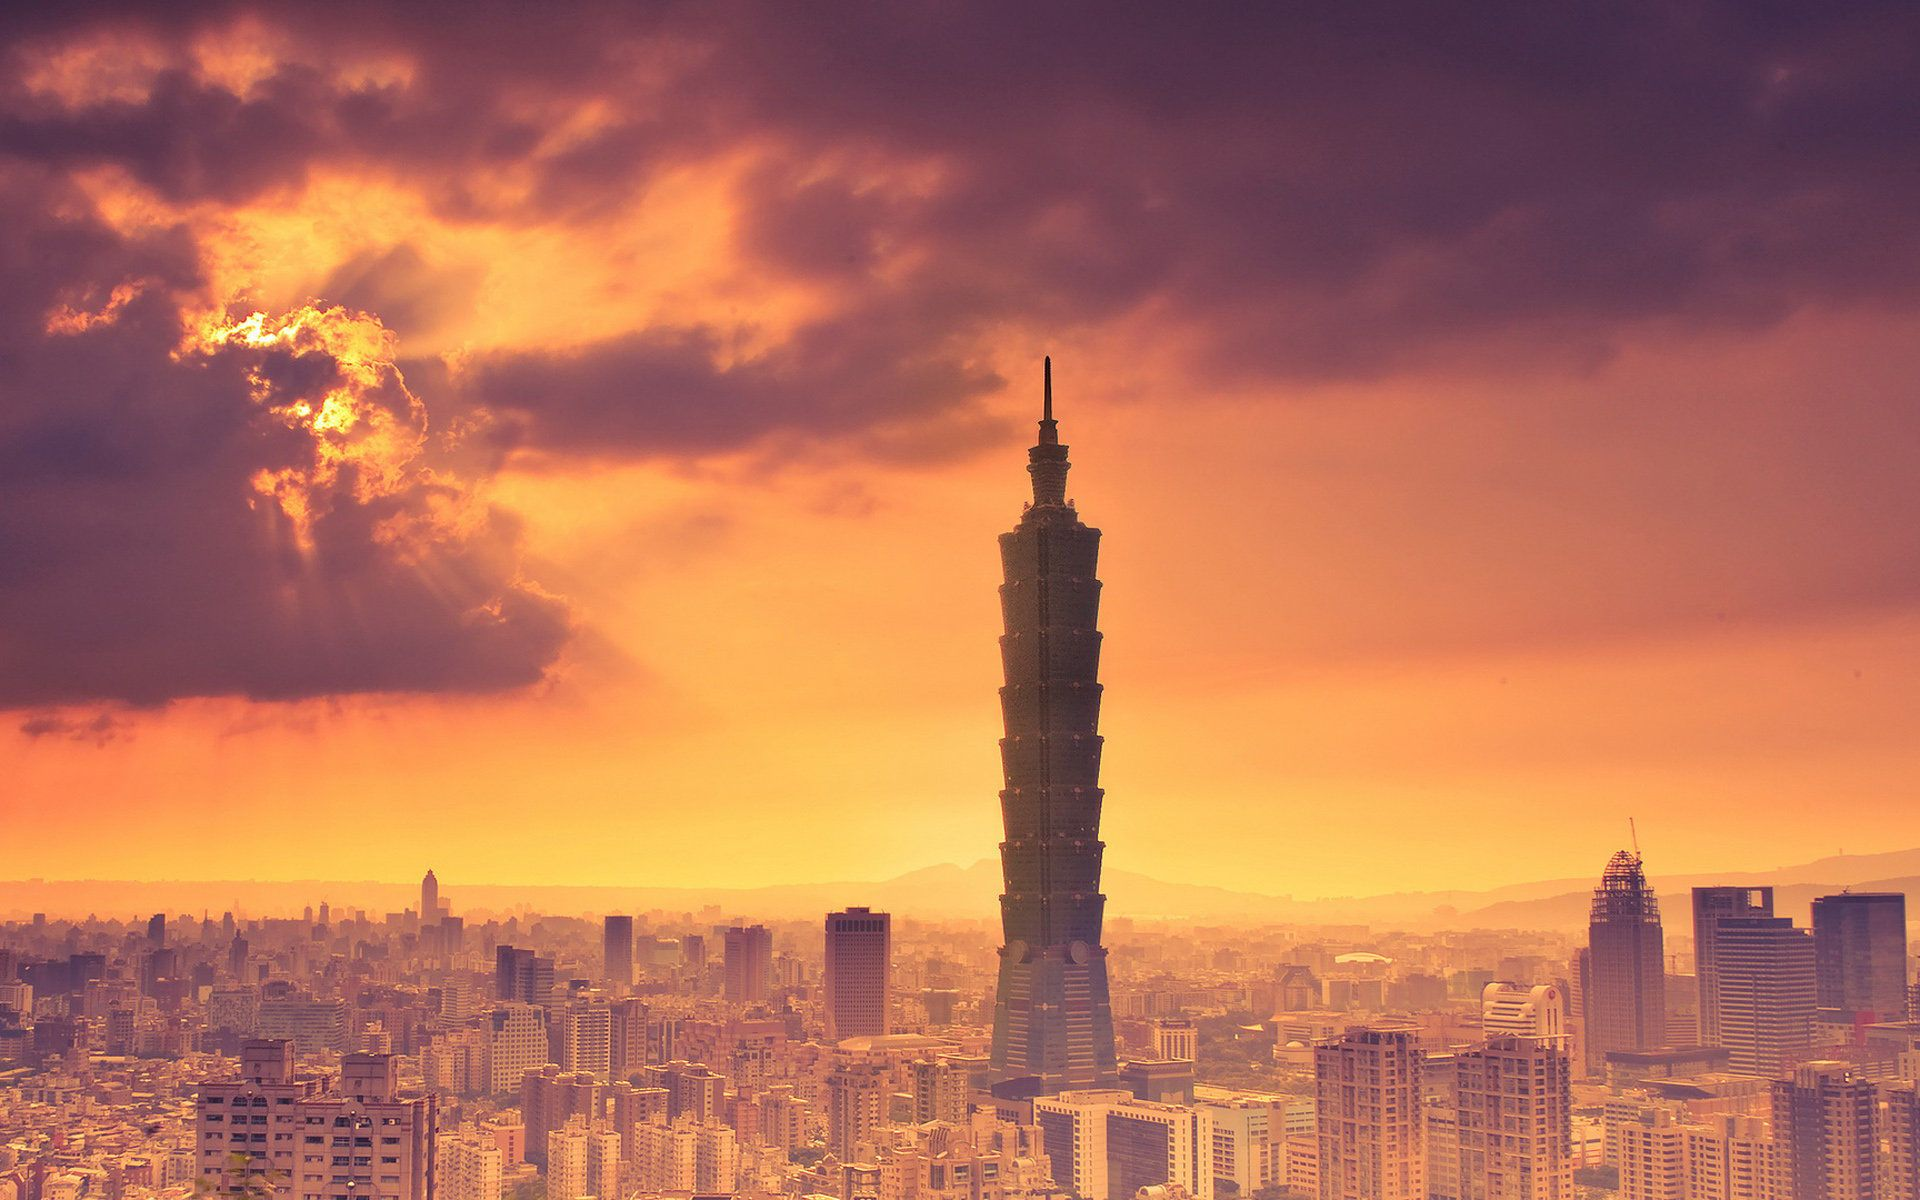 Taipei 101 Clouds Sky Hdwallpaperfx Pinterest Wallpaper